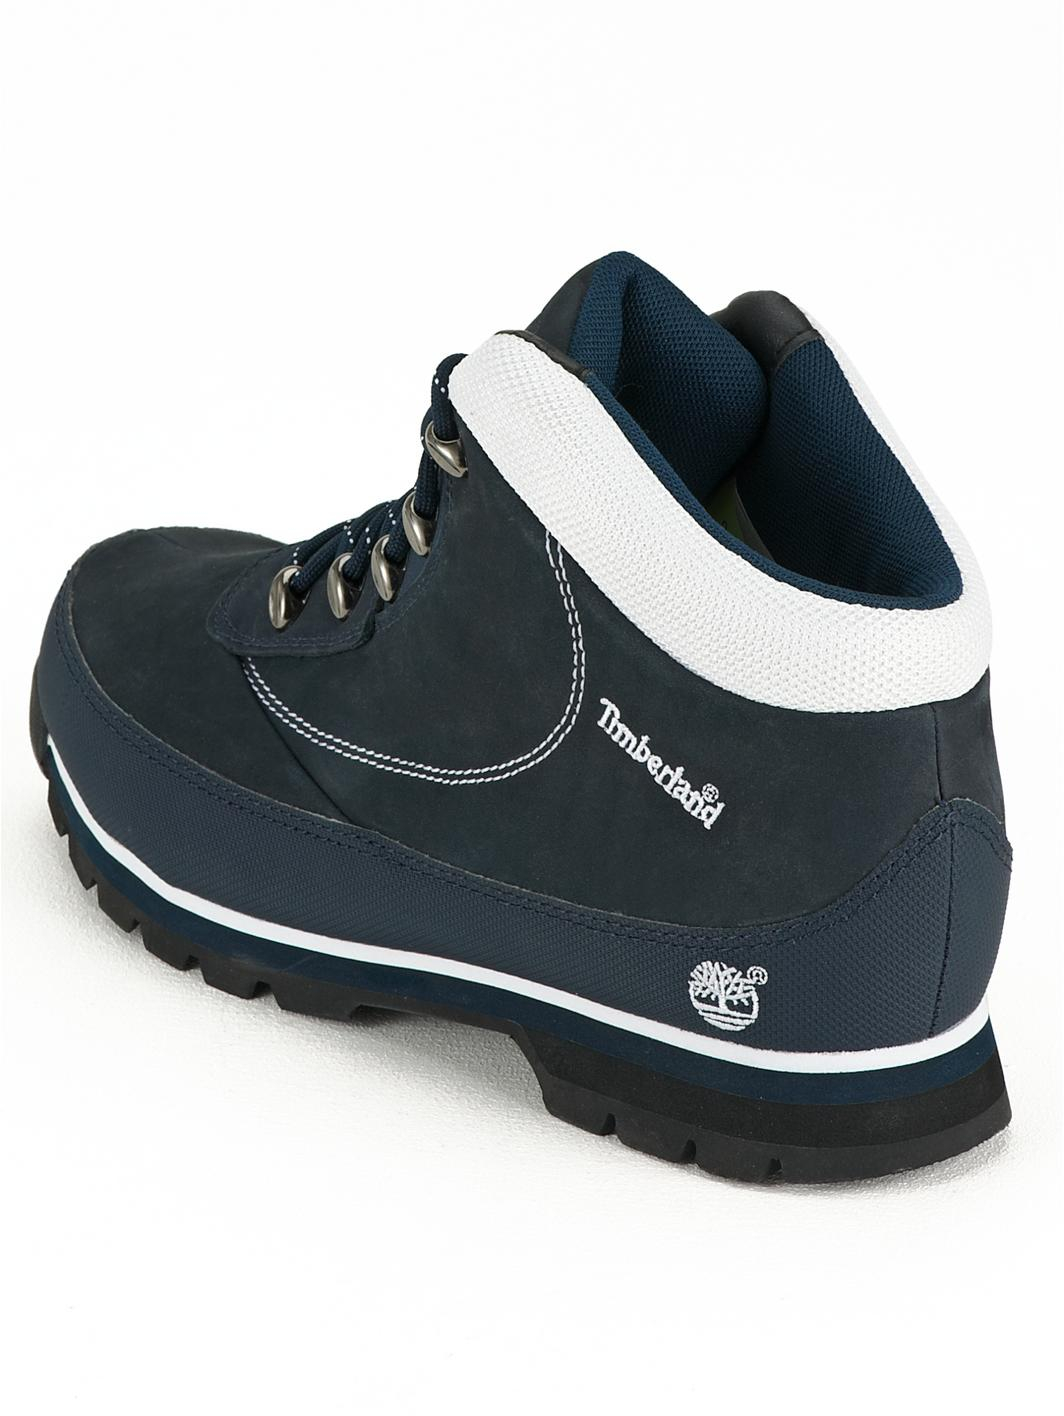 Simple Timberland Womenu0026#39;s Carleton Side Zip Bootie Boots A19QV Navy Blue Dark Blue | EBay